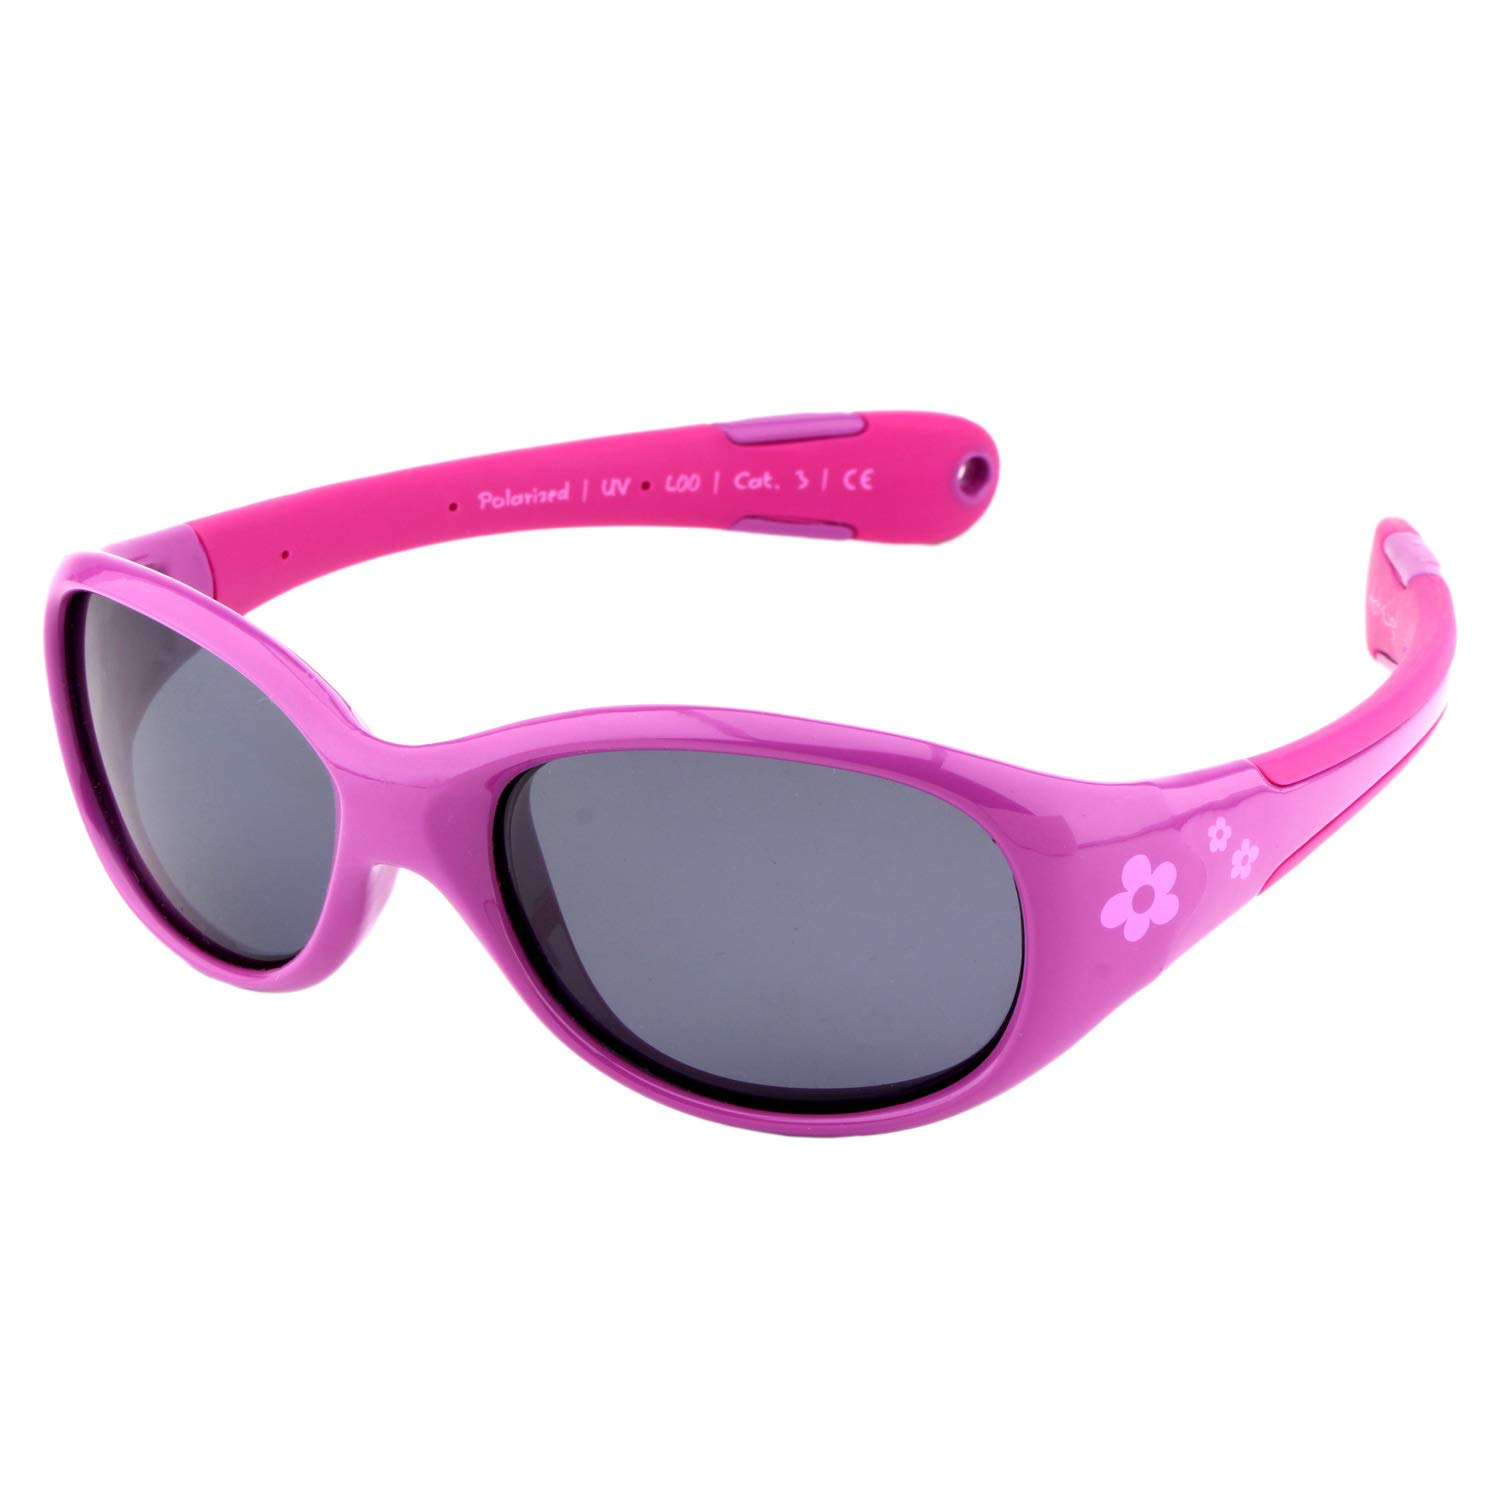 Active Sol BABY Sunglasses | GIRLS | 100% UV 400 protection | polarised | indestructible (made of flexible rubber) | 0-2 years | 18 grams 40.03_Baby-Mädchen